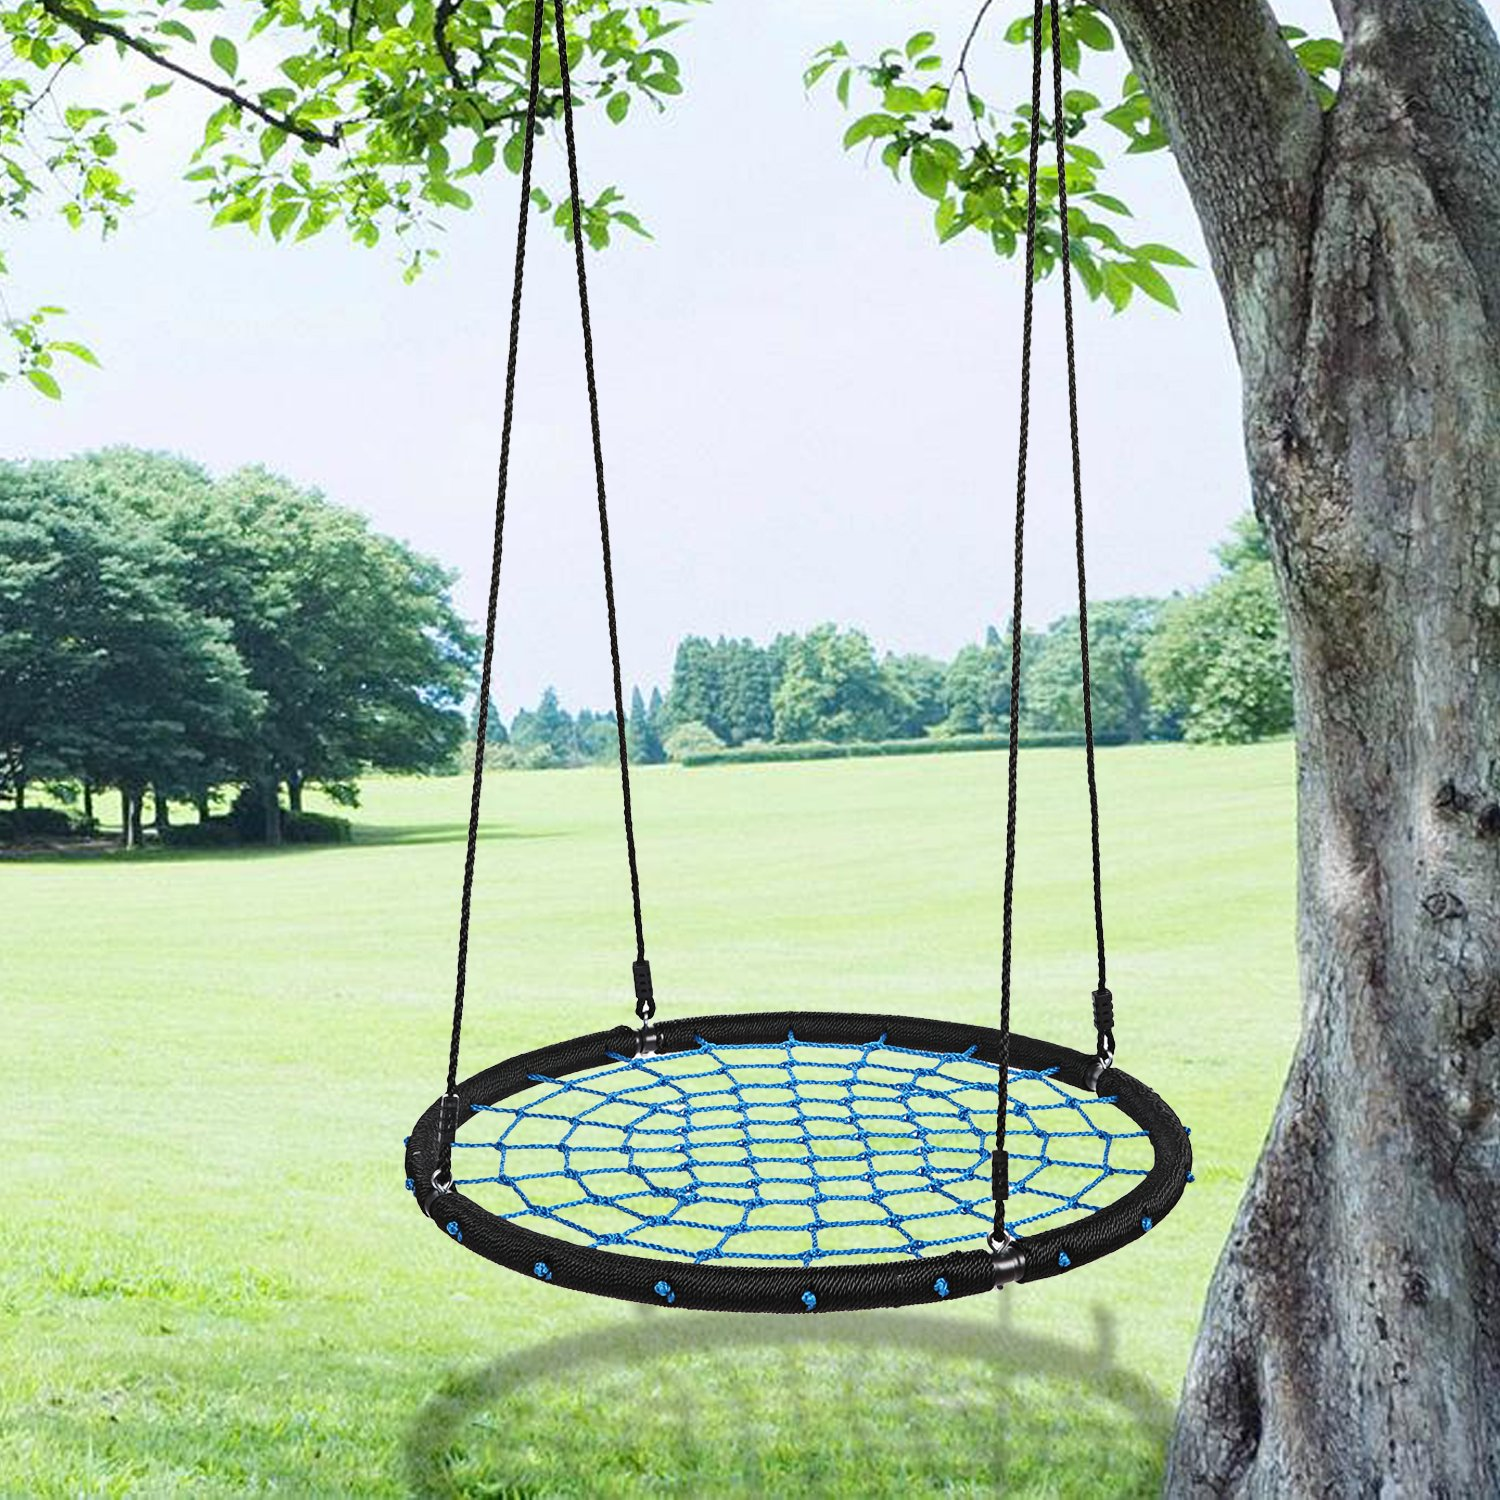 Outdoor Net Swing 39inch Diameter Foldable 2 Person Tree Swing for Garden Kids Children Boys Girls by PEATAO (Image #2)